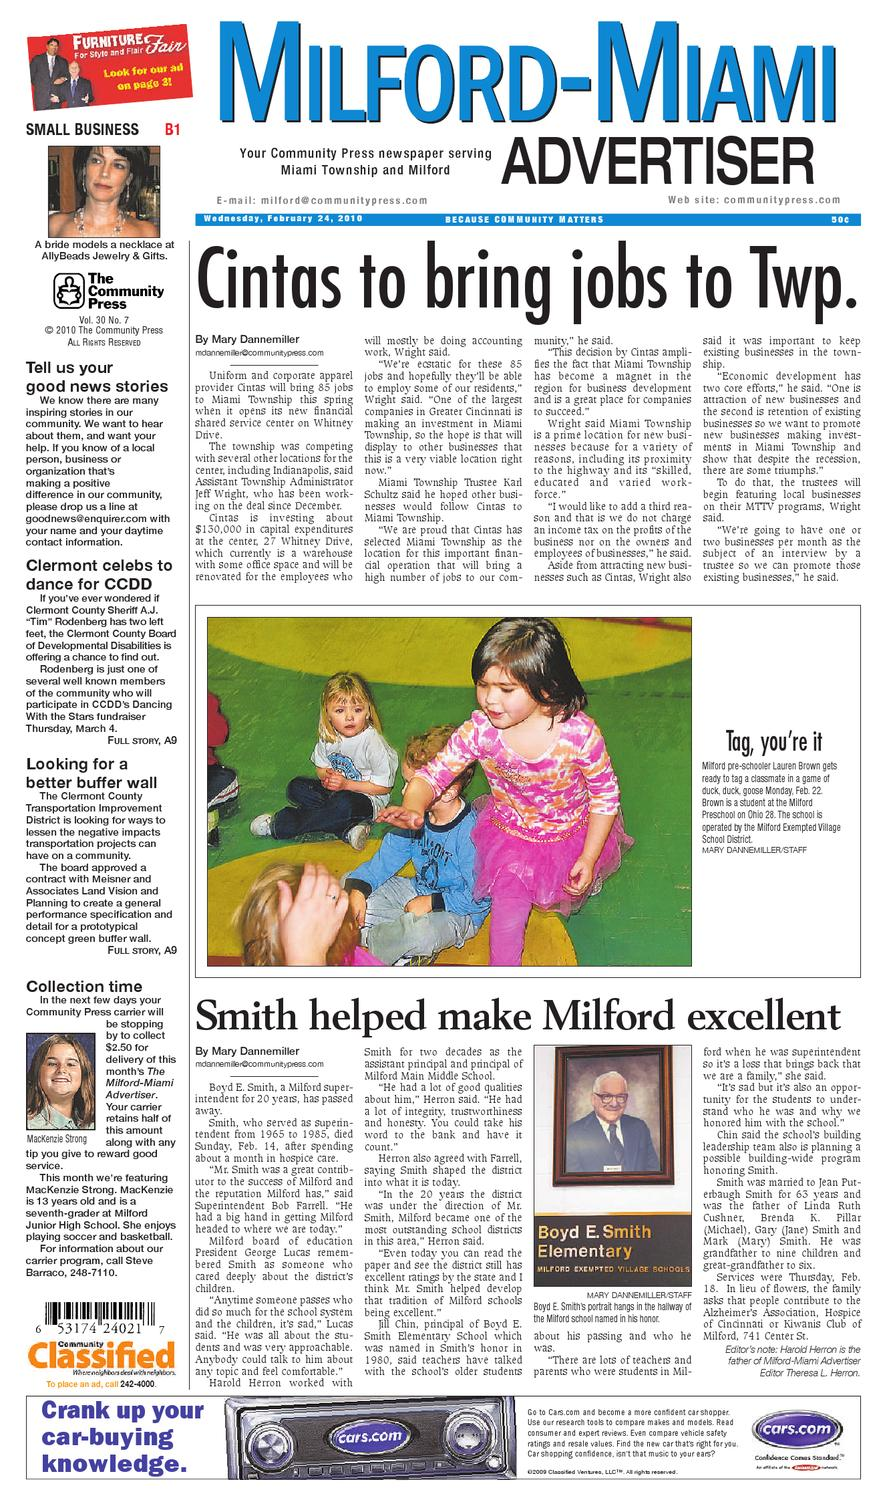 Milford Miami Advertiser 022410 By Enquirer Media Issuu Underground Feeder Cable Timothy Thiele